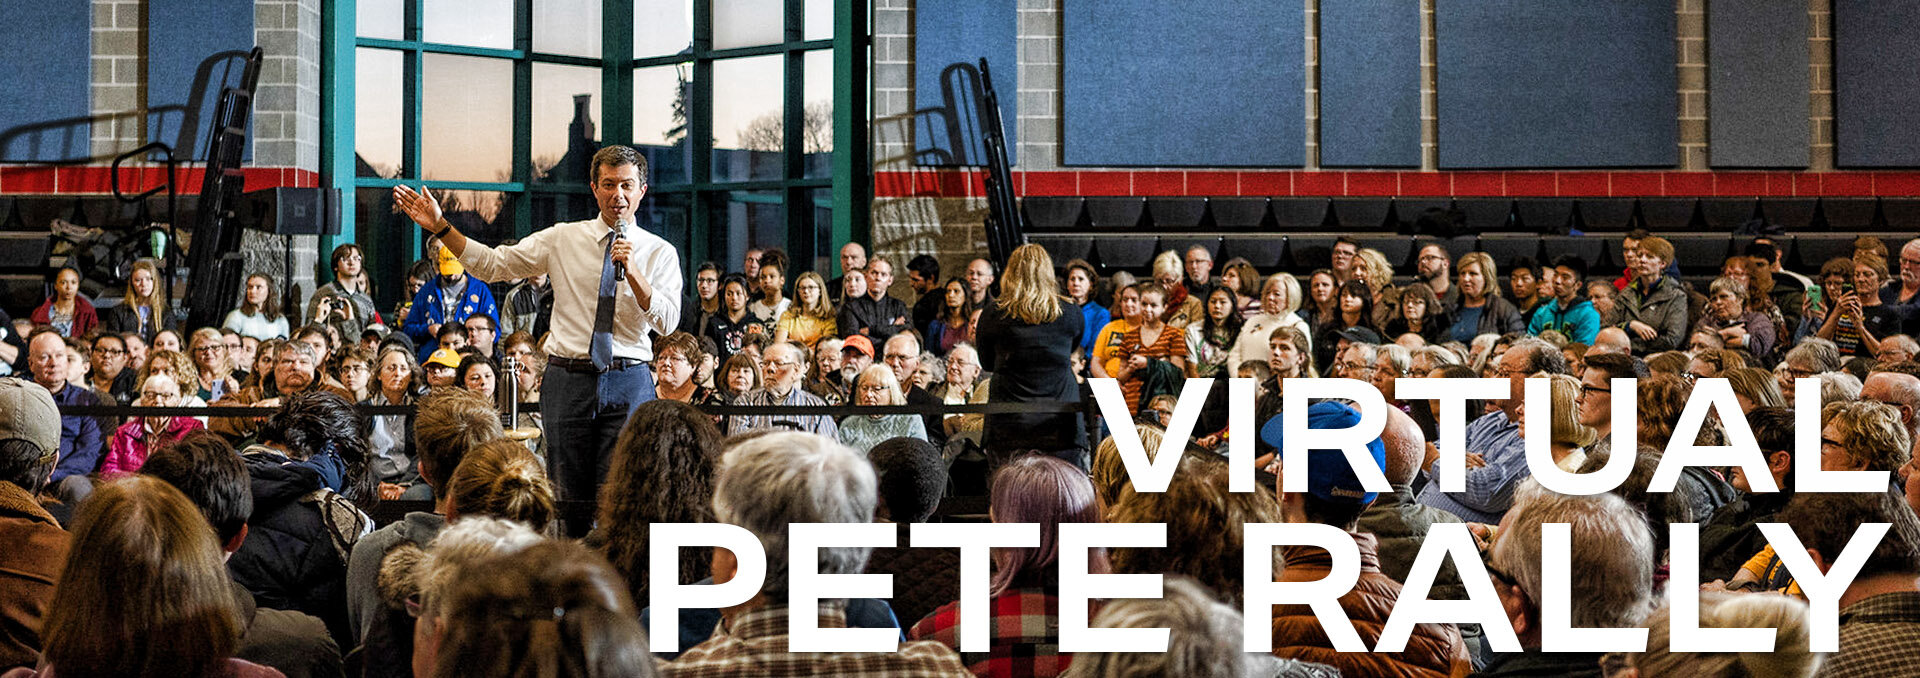 virtual pete rally banner2.jpg